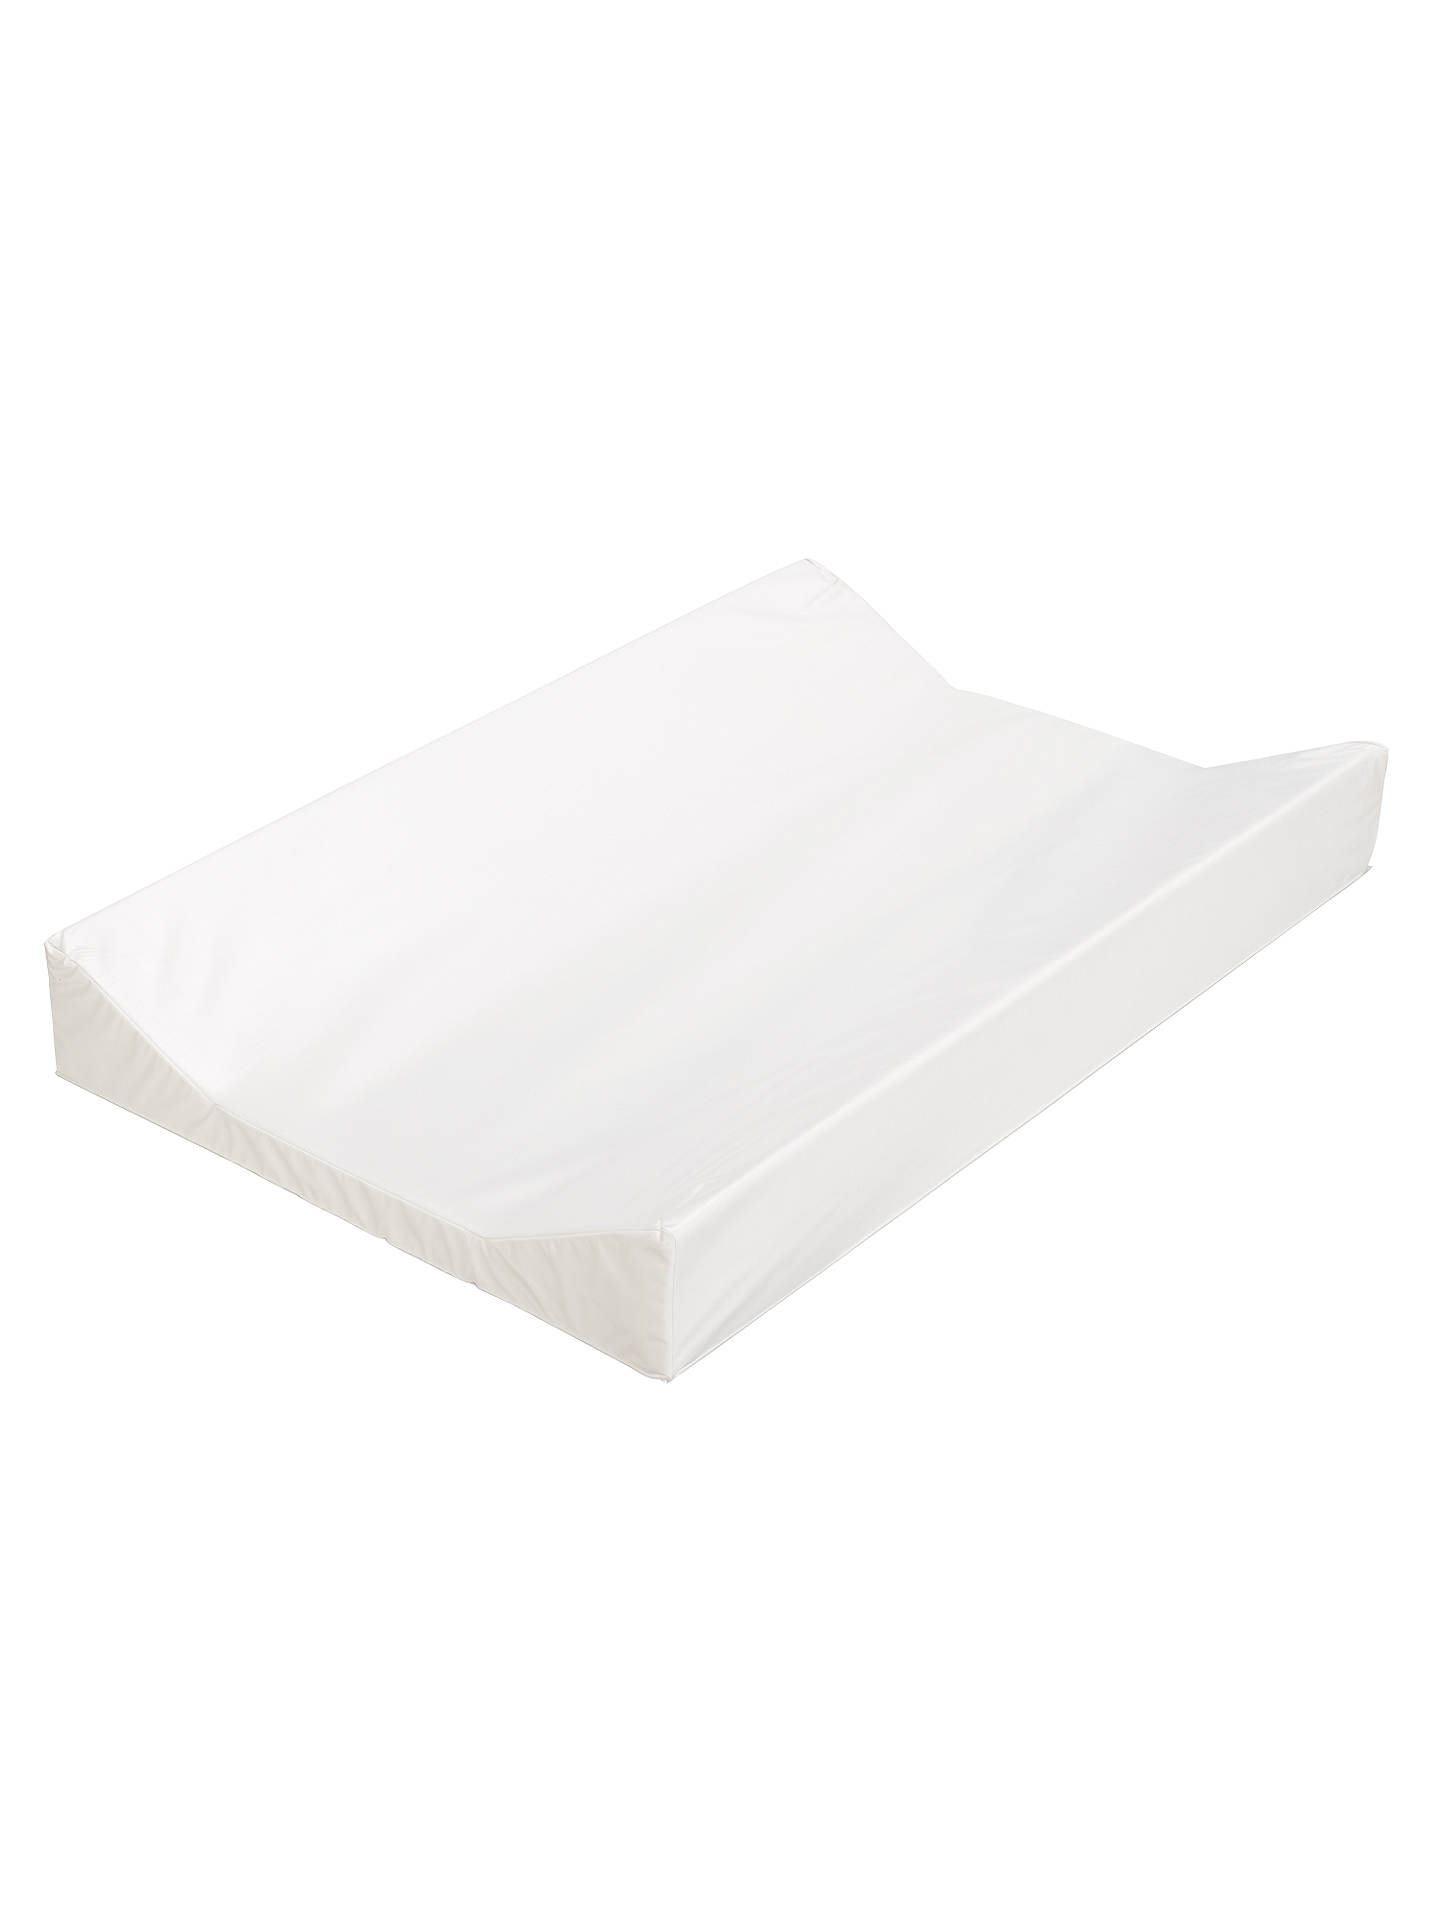 BuyJohn Lewis & Partners Wedge Changing Mat, White Online at johnlewis.com